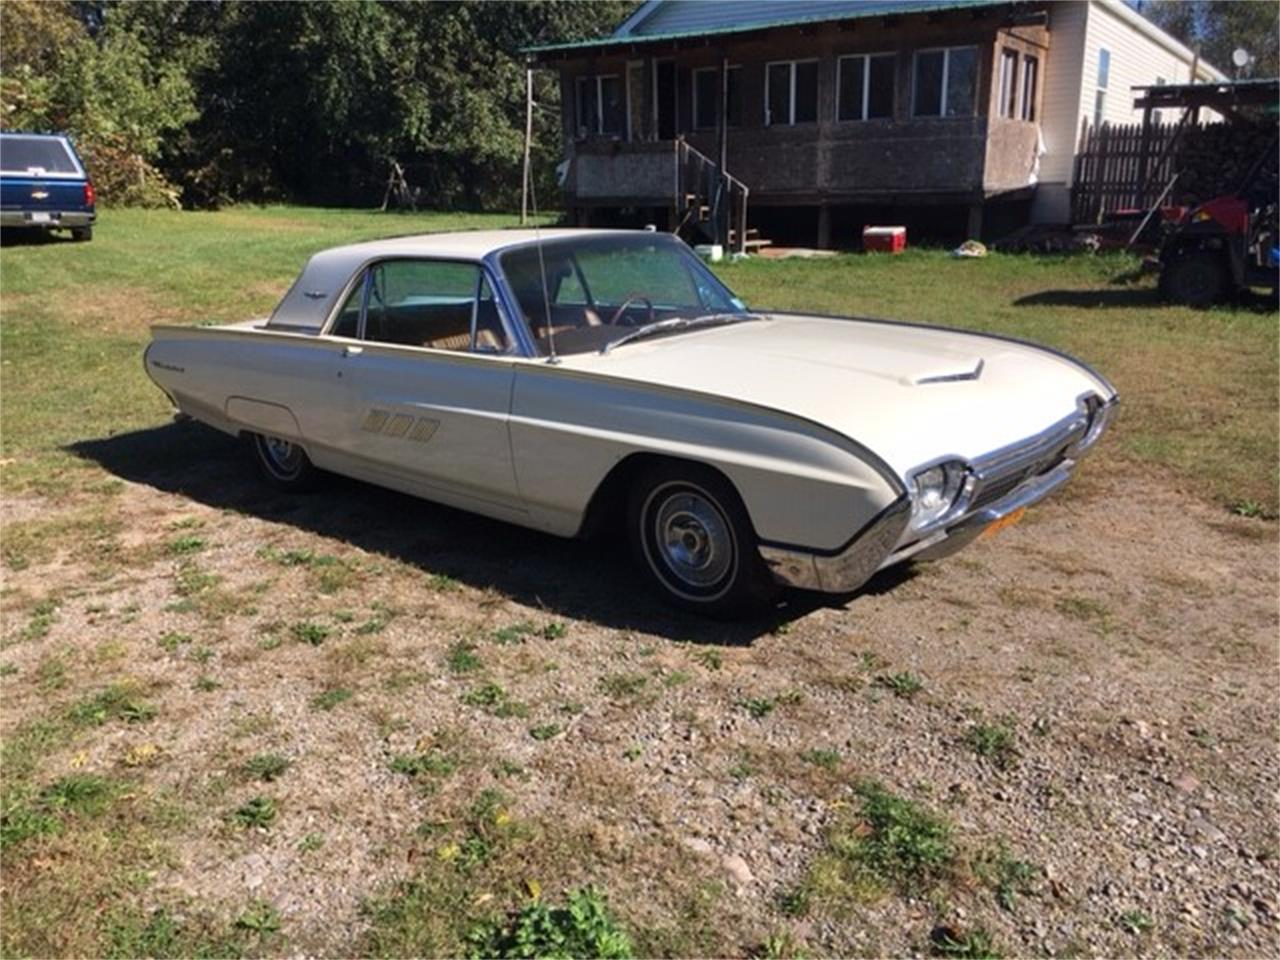 Large Picture of 1963 Ford Thunderbird located in Shortsville New York - $13,950.00 Offered by a Private Seller - M4ND